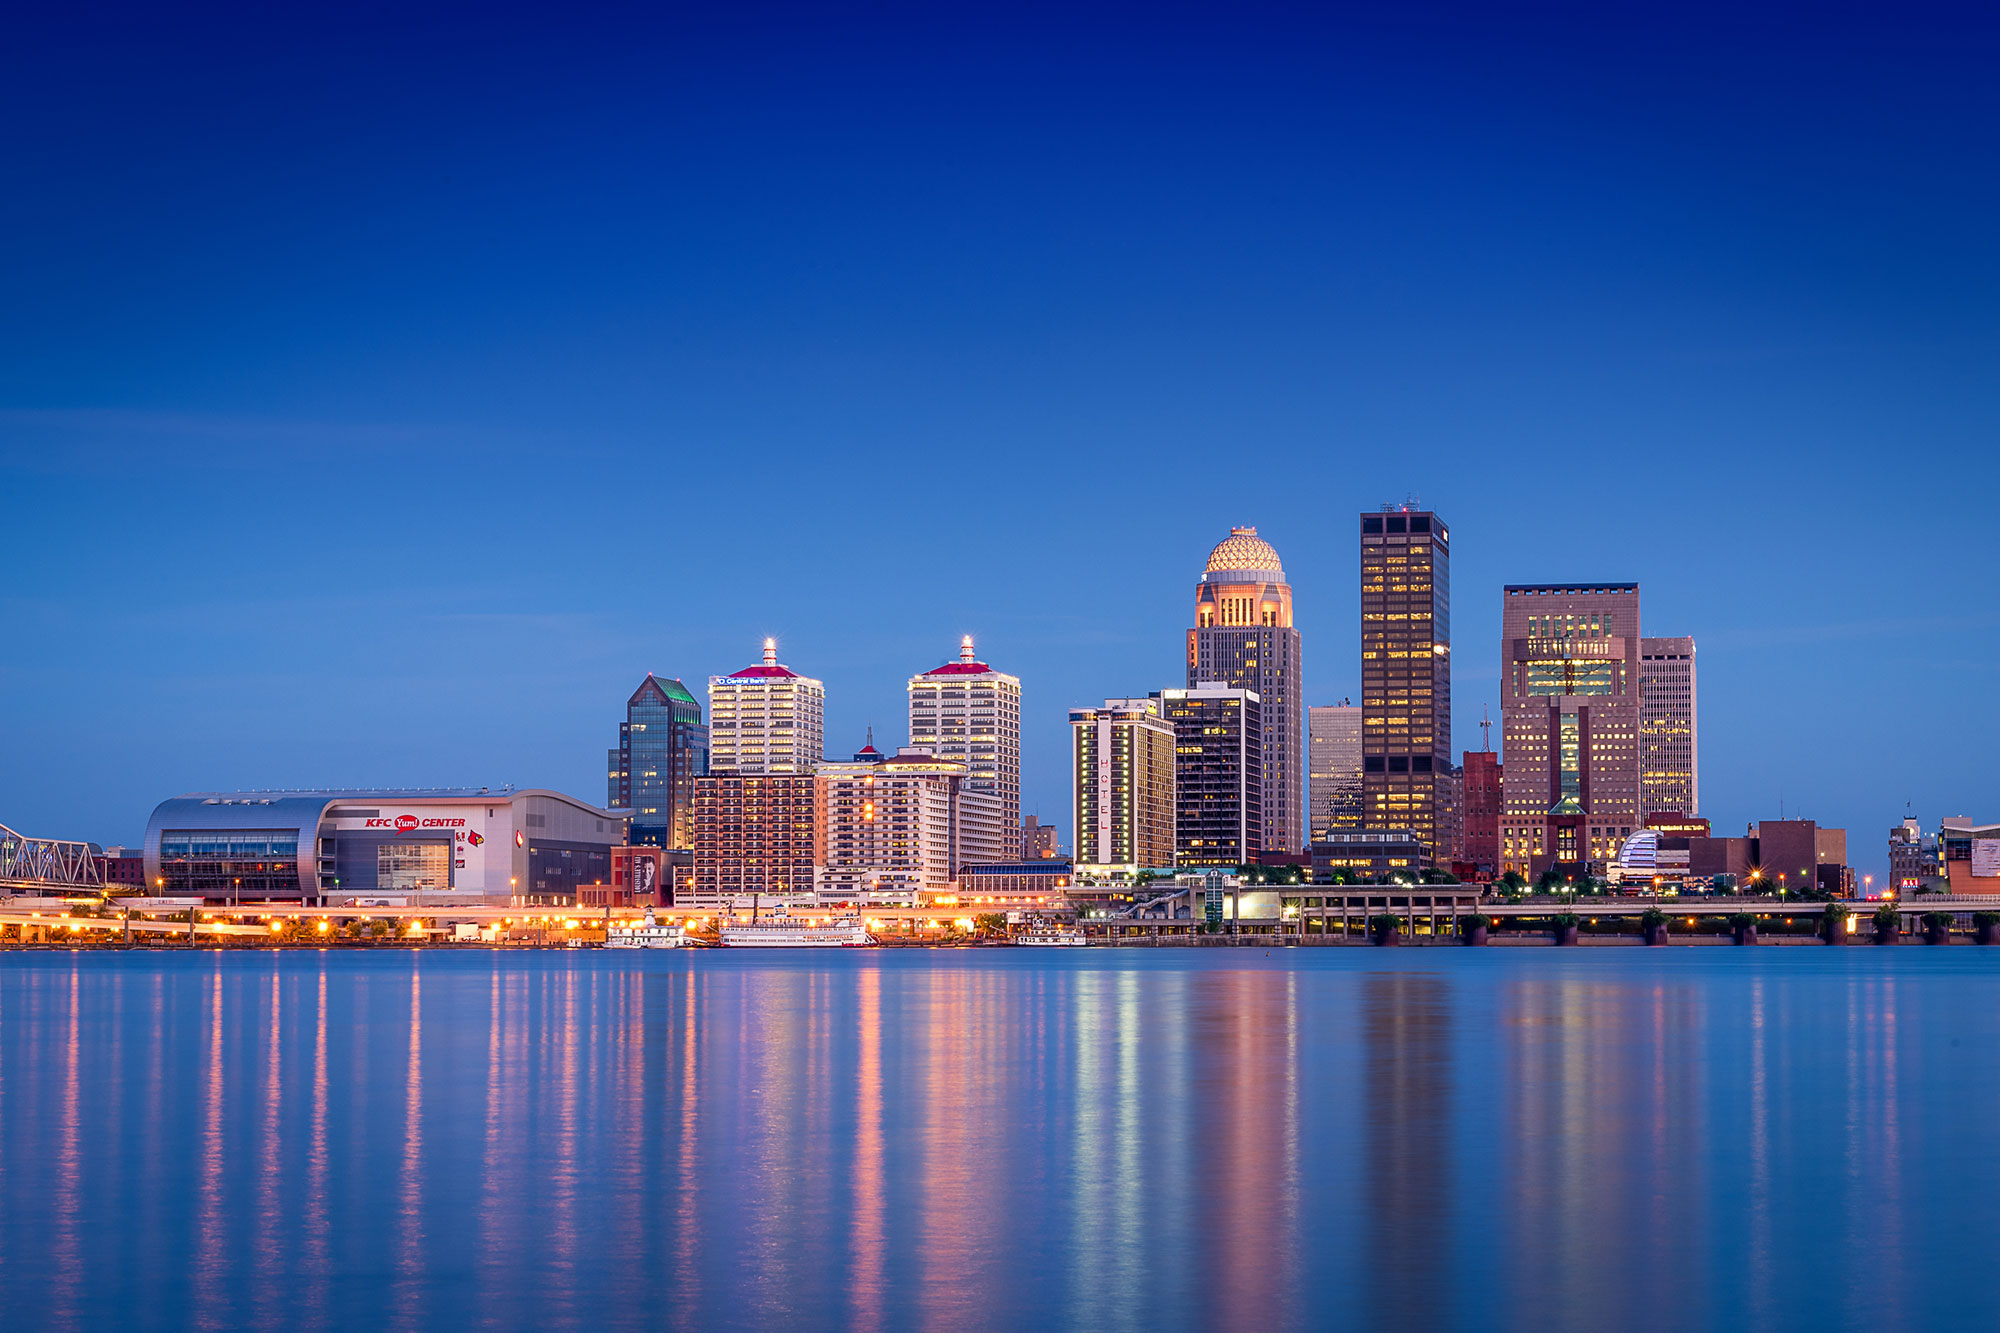 12. Louisville, Kentucky